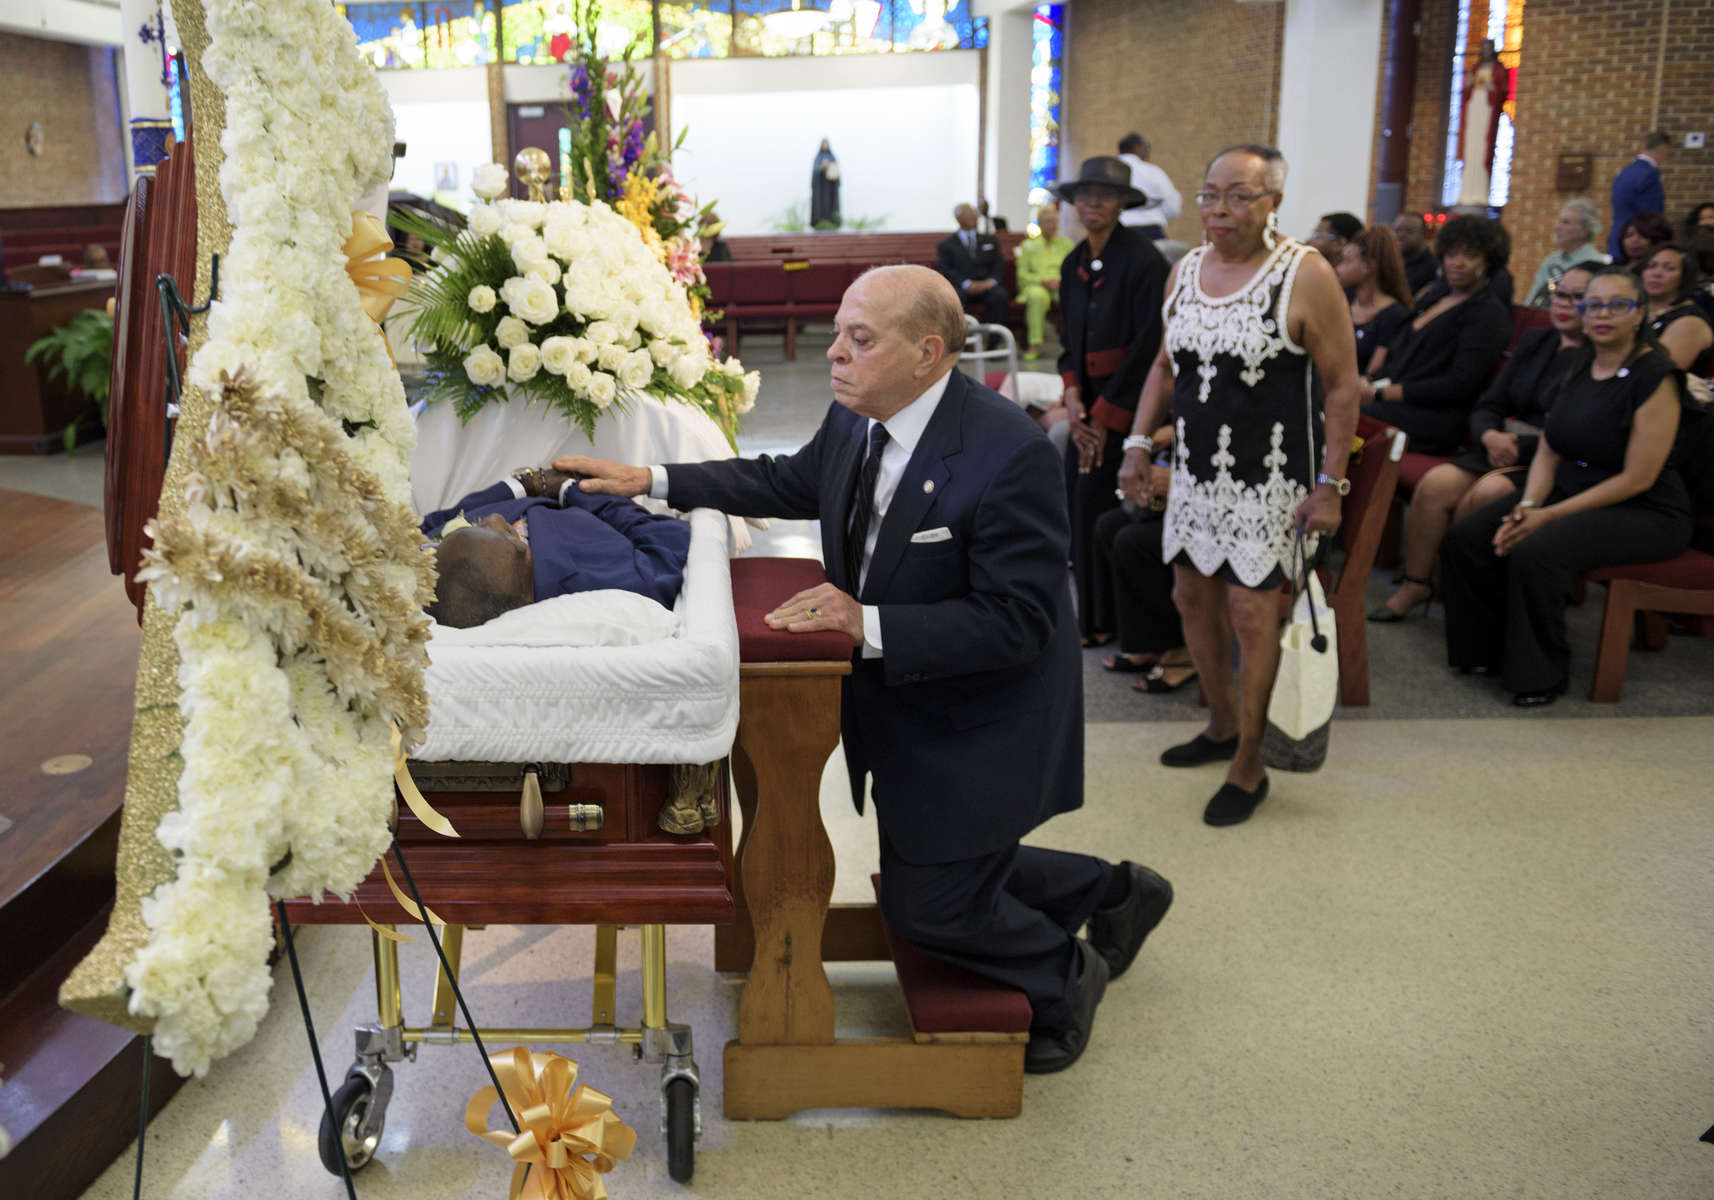 Deacon John Moore touches his friend for the last time during the viewing of Dave Bartholomew at St. Gabriel the Archangel Church in New Orleans, La. Monday, July 8, 2019. The life of David Bartholomew, a trumpeter, bandleader, producer, arranger, composer and star-maker of Fats Domino, Lloyd Price and many other New Orleans talents, was celebrated with prayers, tributes, brass bands and dancing. He died at 100 years of age on June 23.